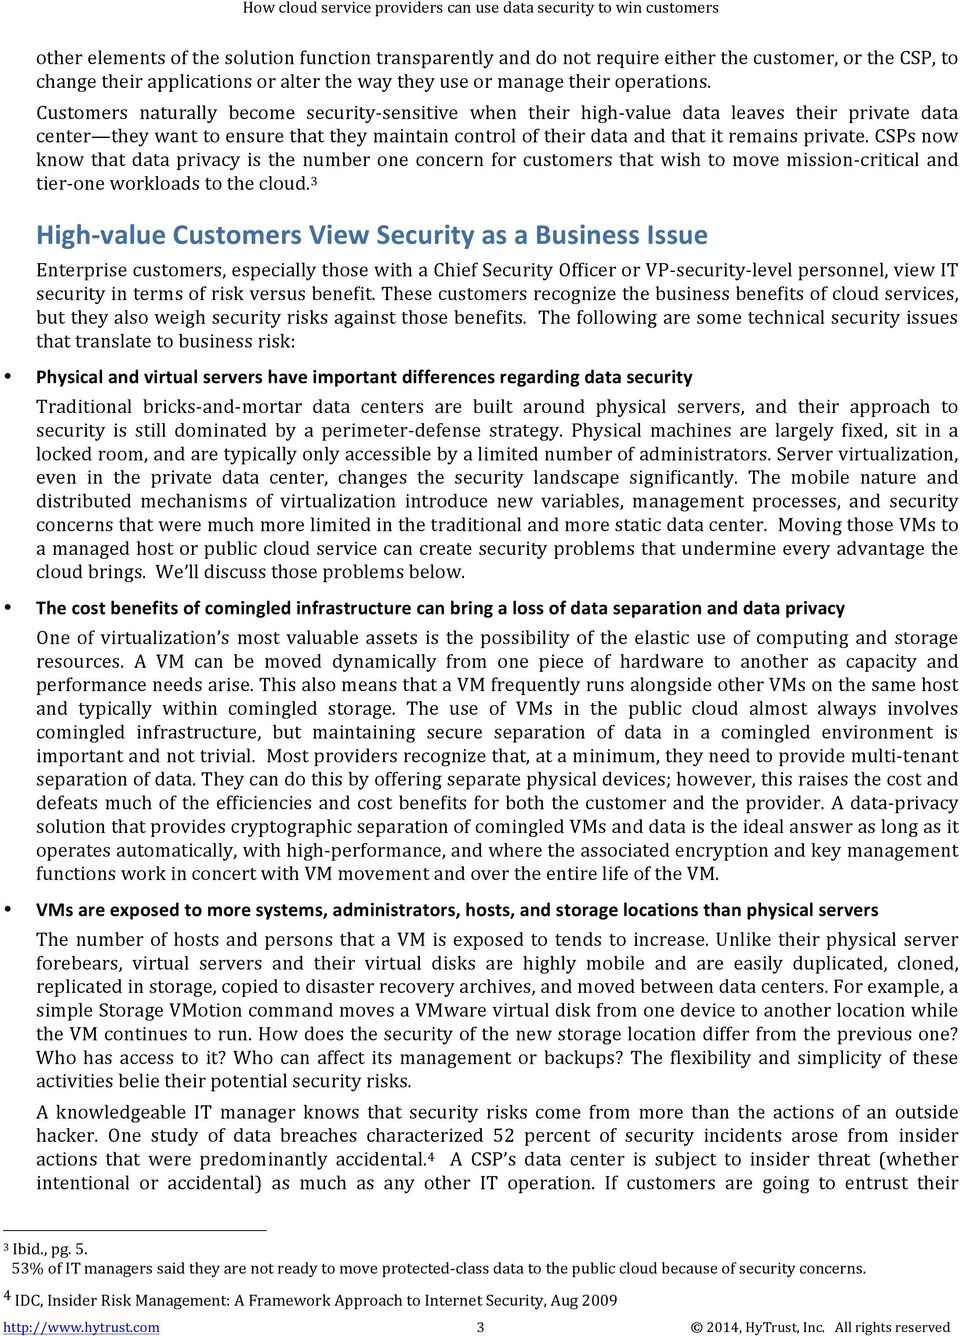 Customers naturally become securitynsensitive when their highnvalue data leaves their private data center theywanttoensurethattheymaintaincontroloftheirdataandthatitremainsprivate.